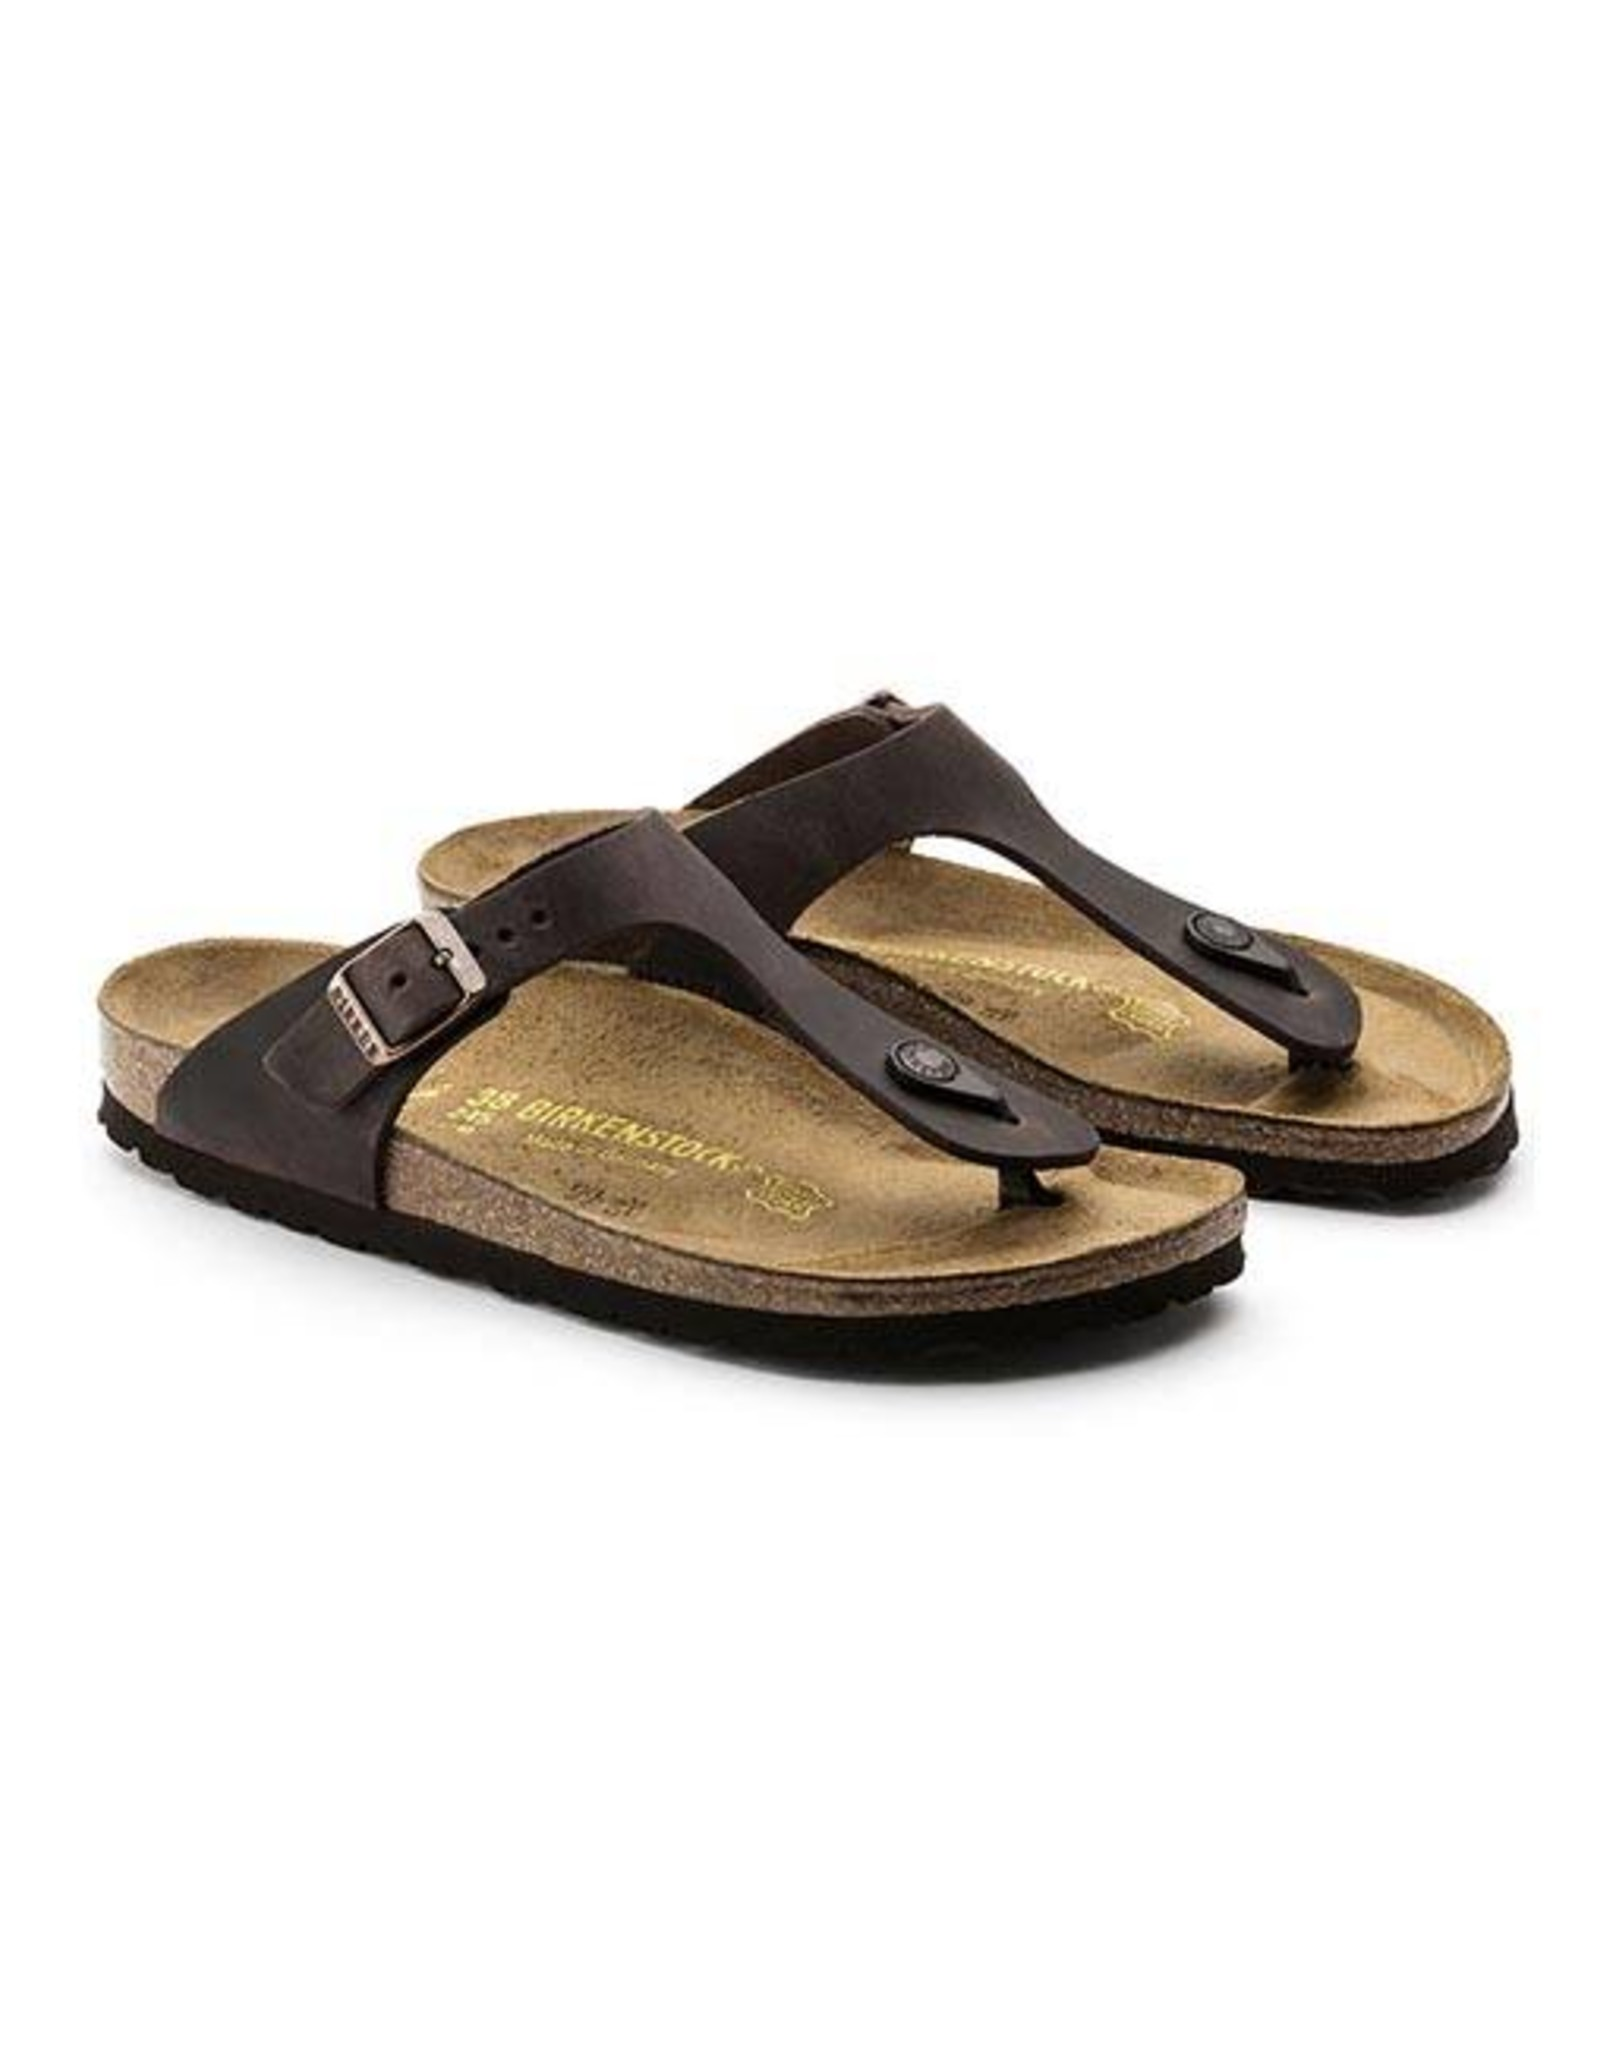 Birkenstock Gizeh -  Natural Oiled Leather in Habana